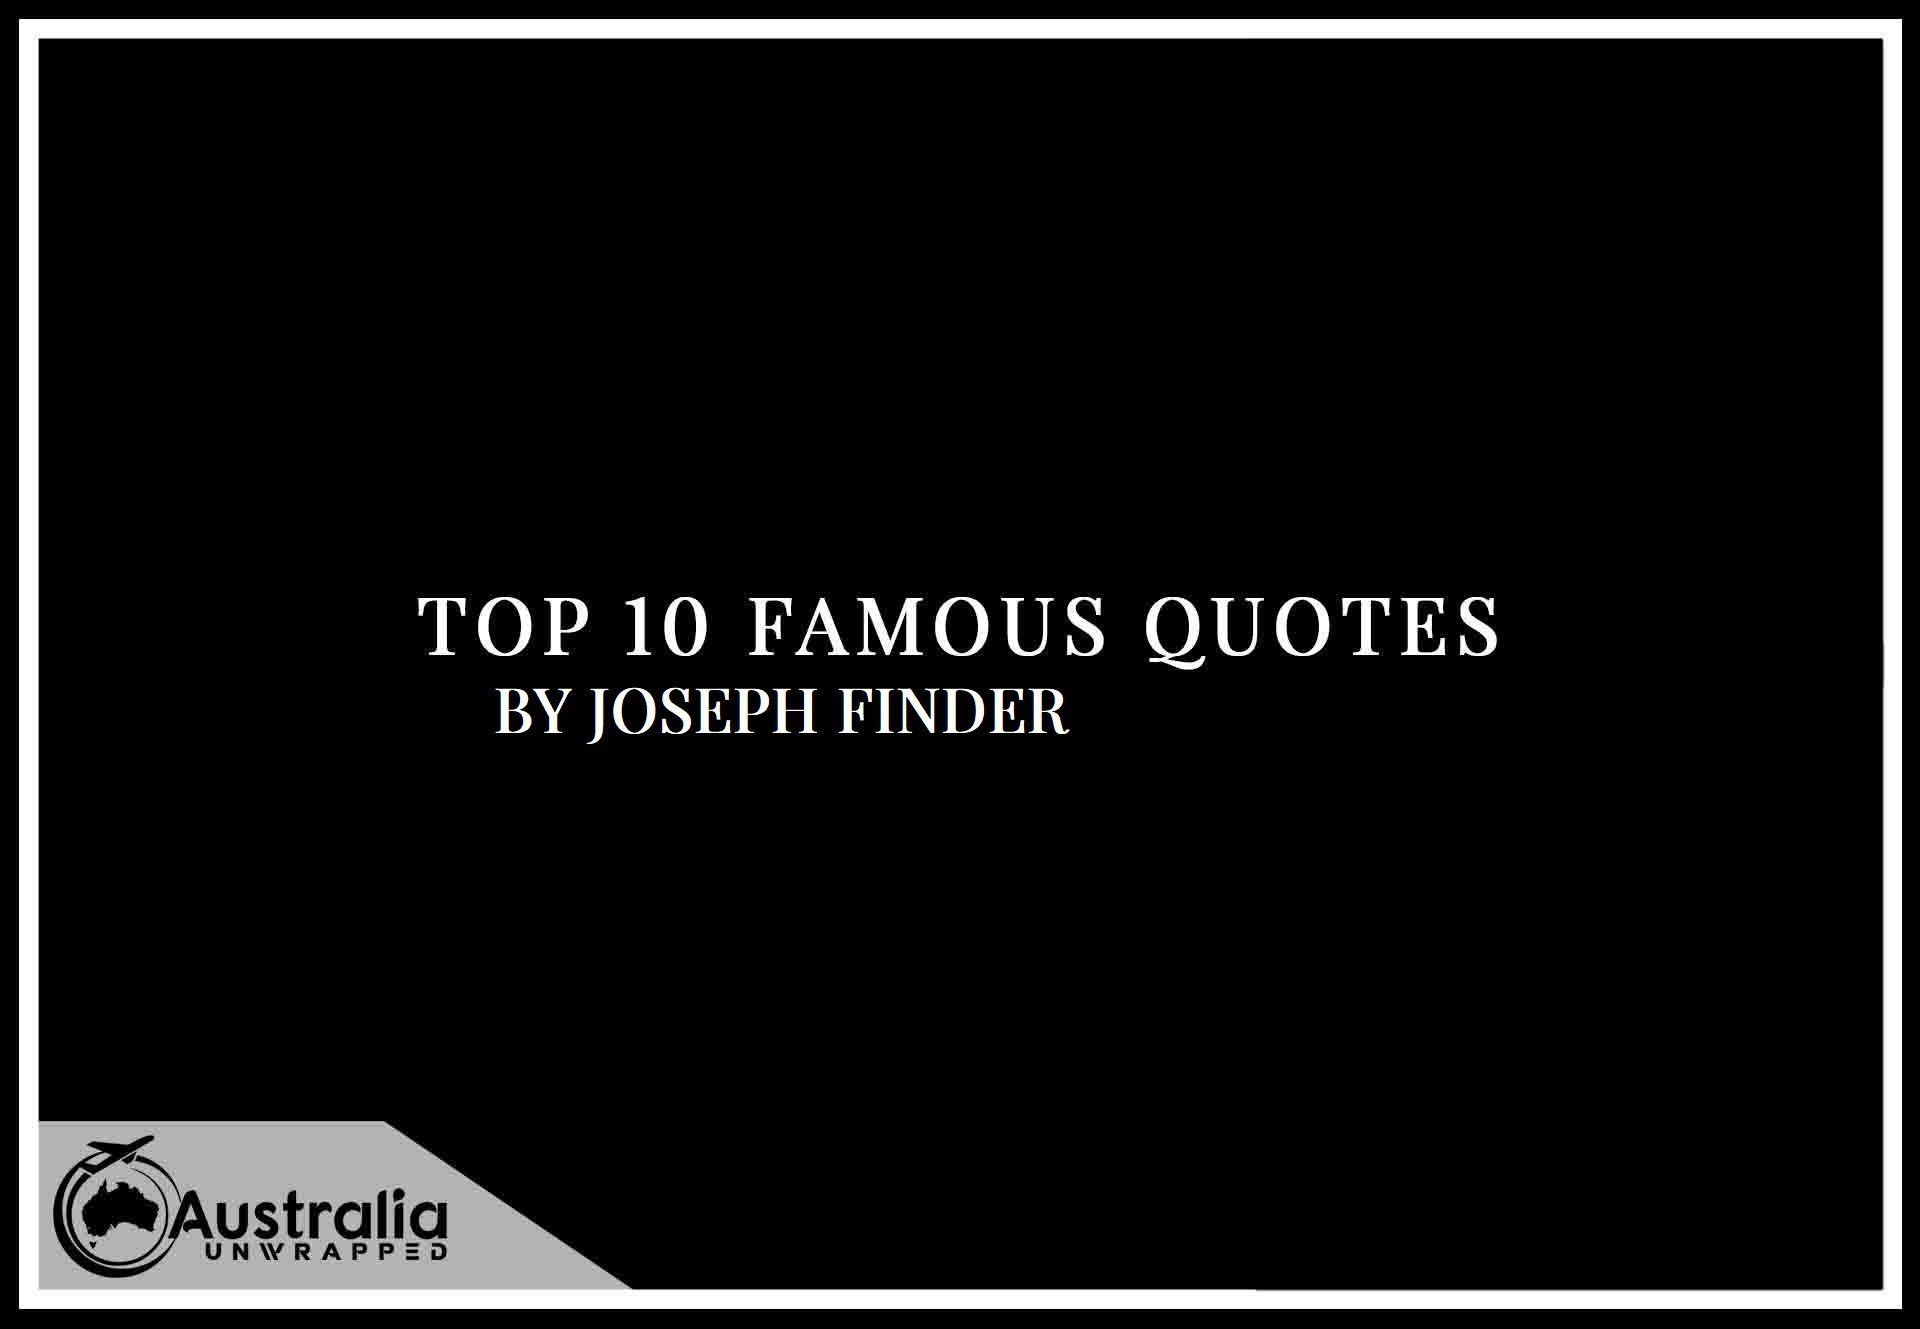 Top 10 Famous Quotes by Author Joseph Finder